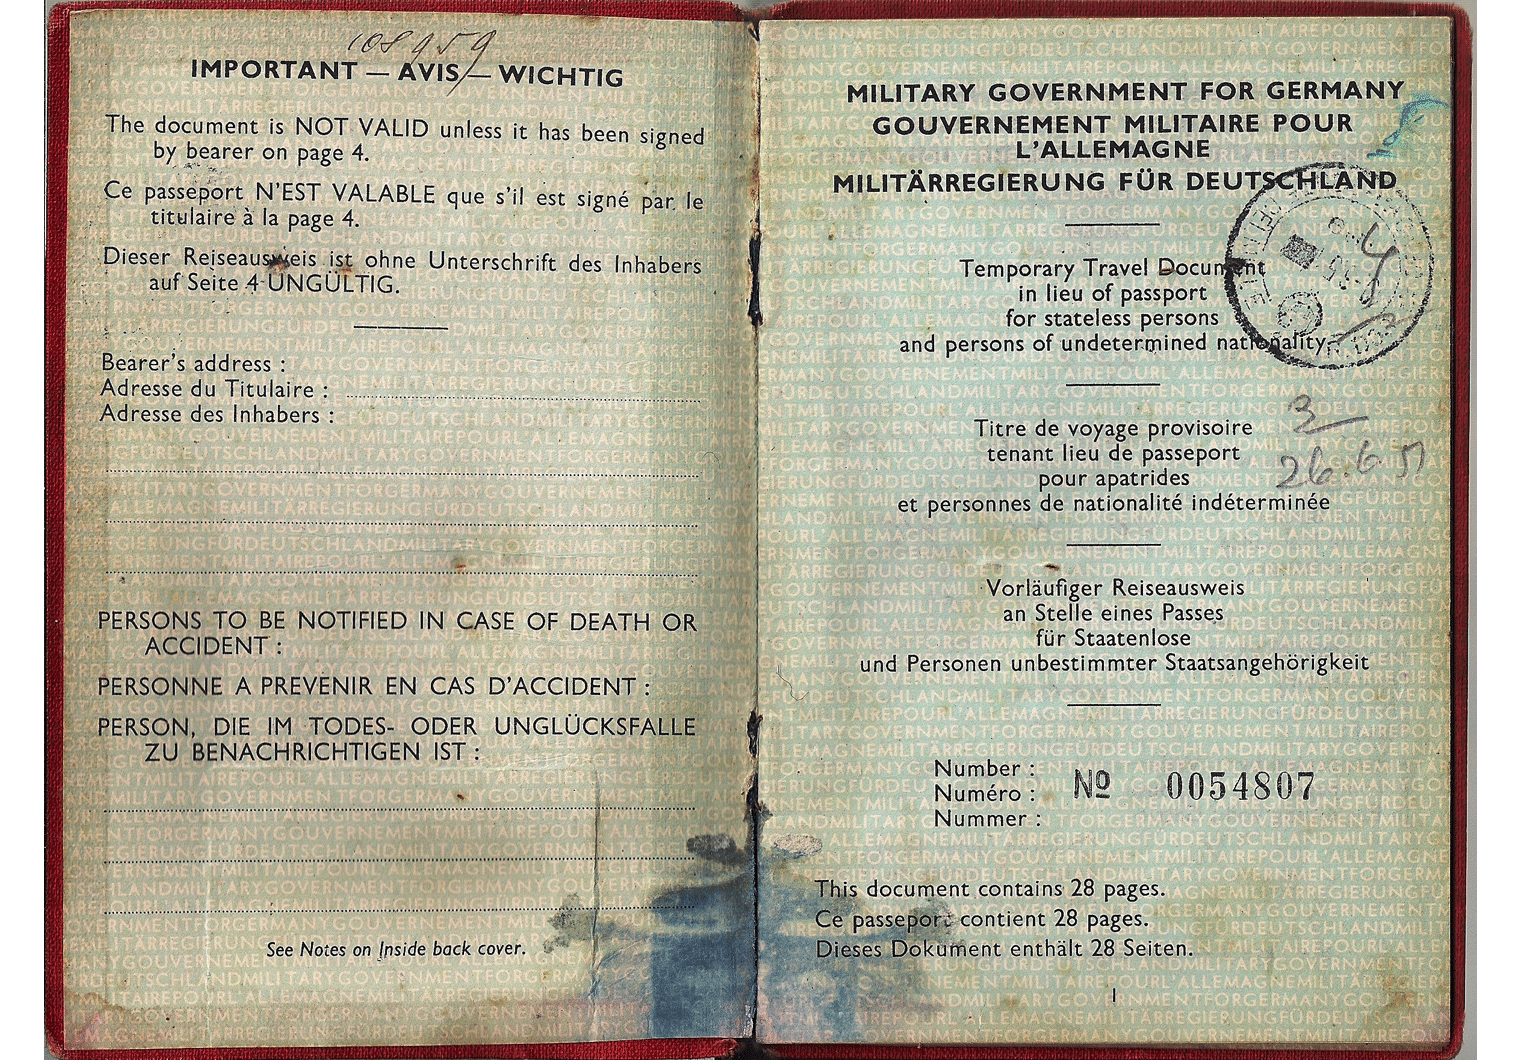 Allied Military Government passport